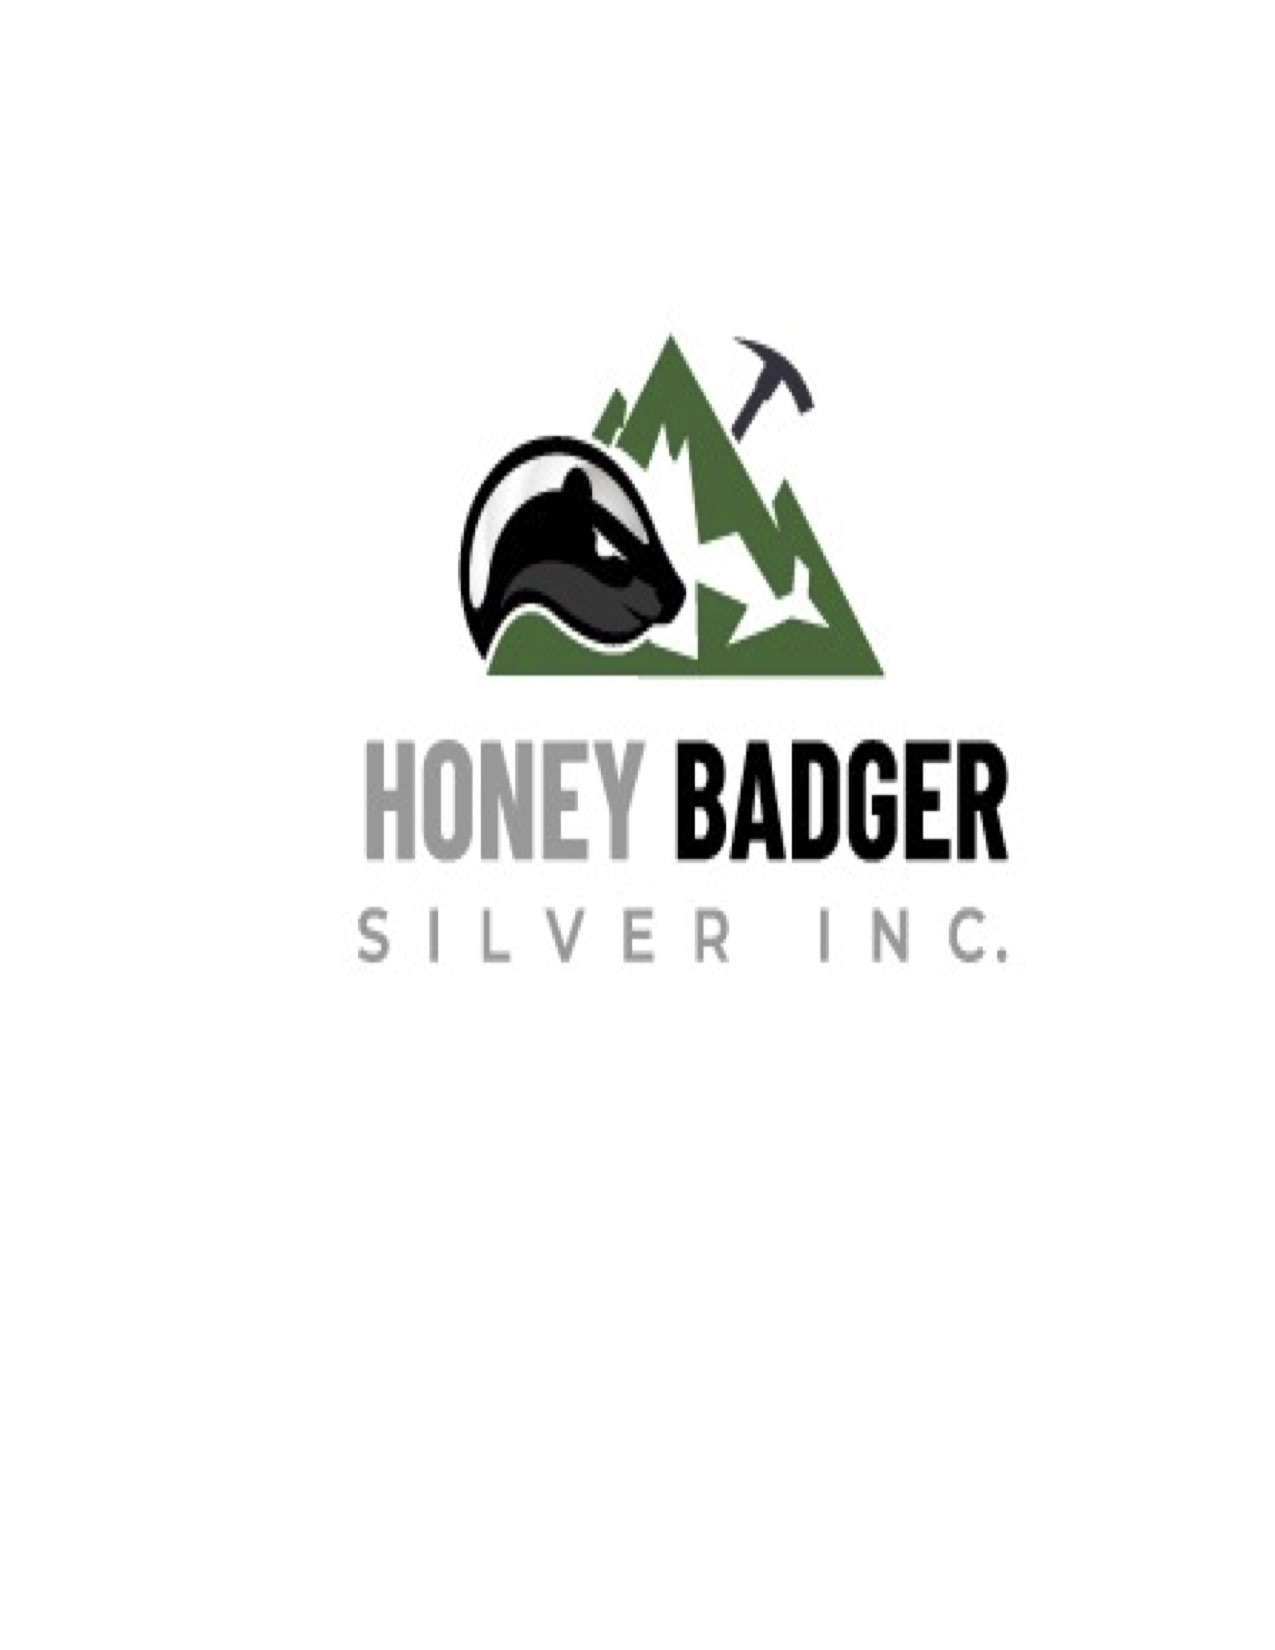 Honey Badger Silver: Message from the Chairman and Corporate Outlook